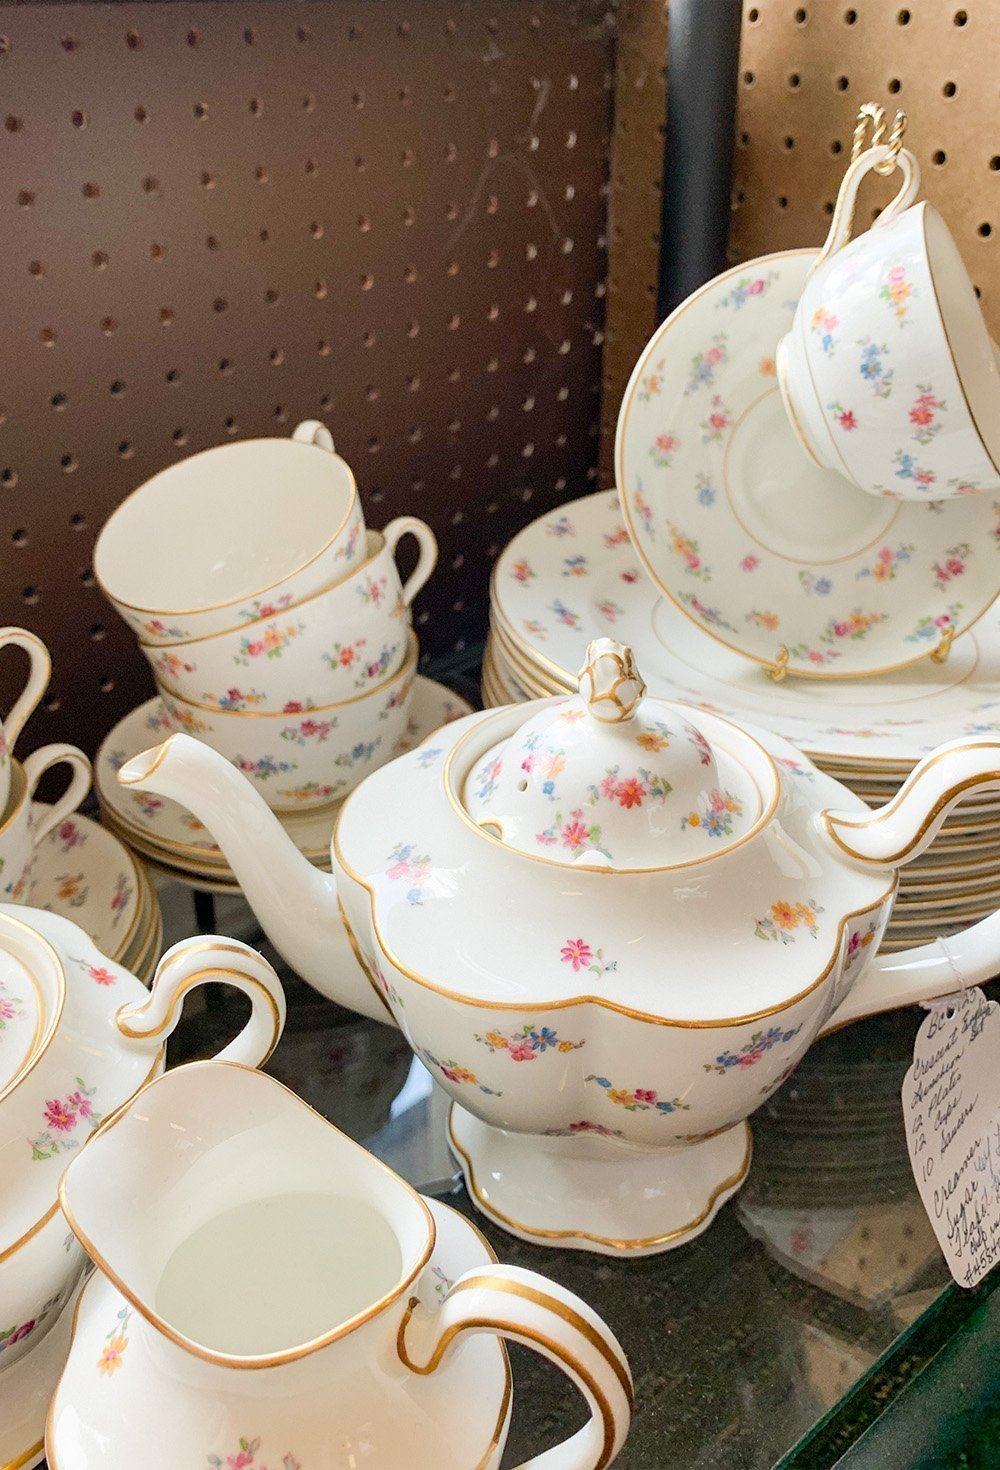 The best places to find vintage china on www.ashleybrookedesigns.com